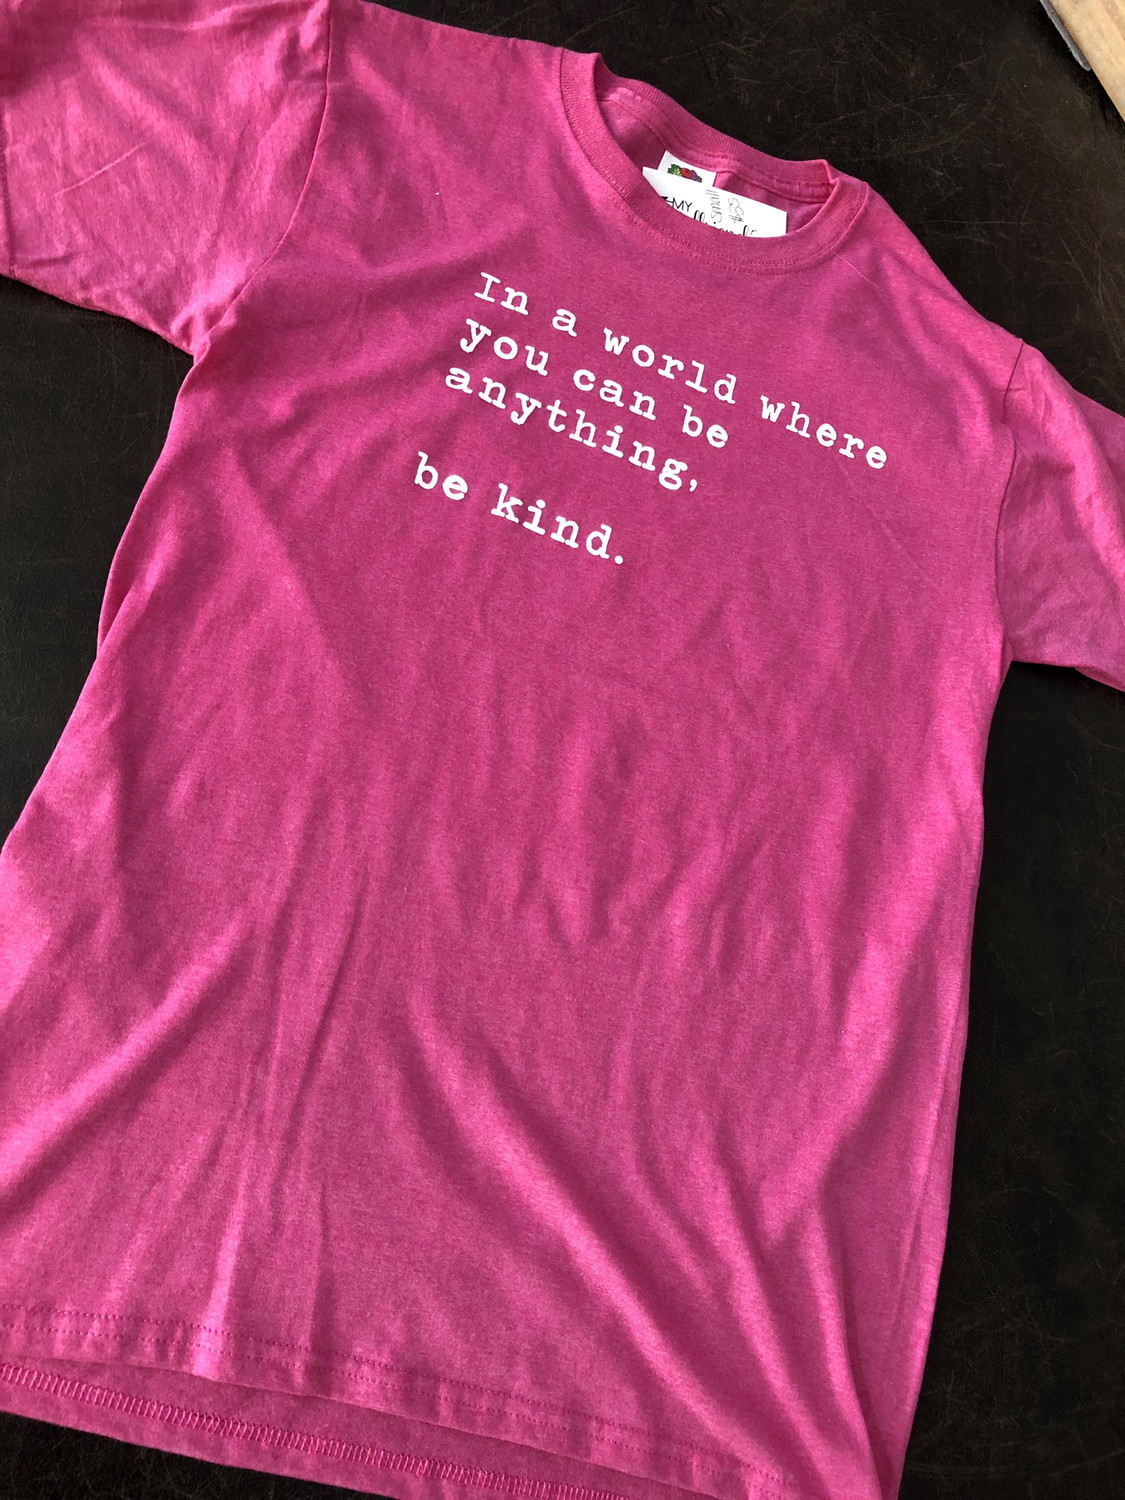 Be Kind ~ PINK SHIRT ANTI BULLY DAY Collection ~Heather Raspberry